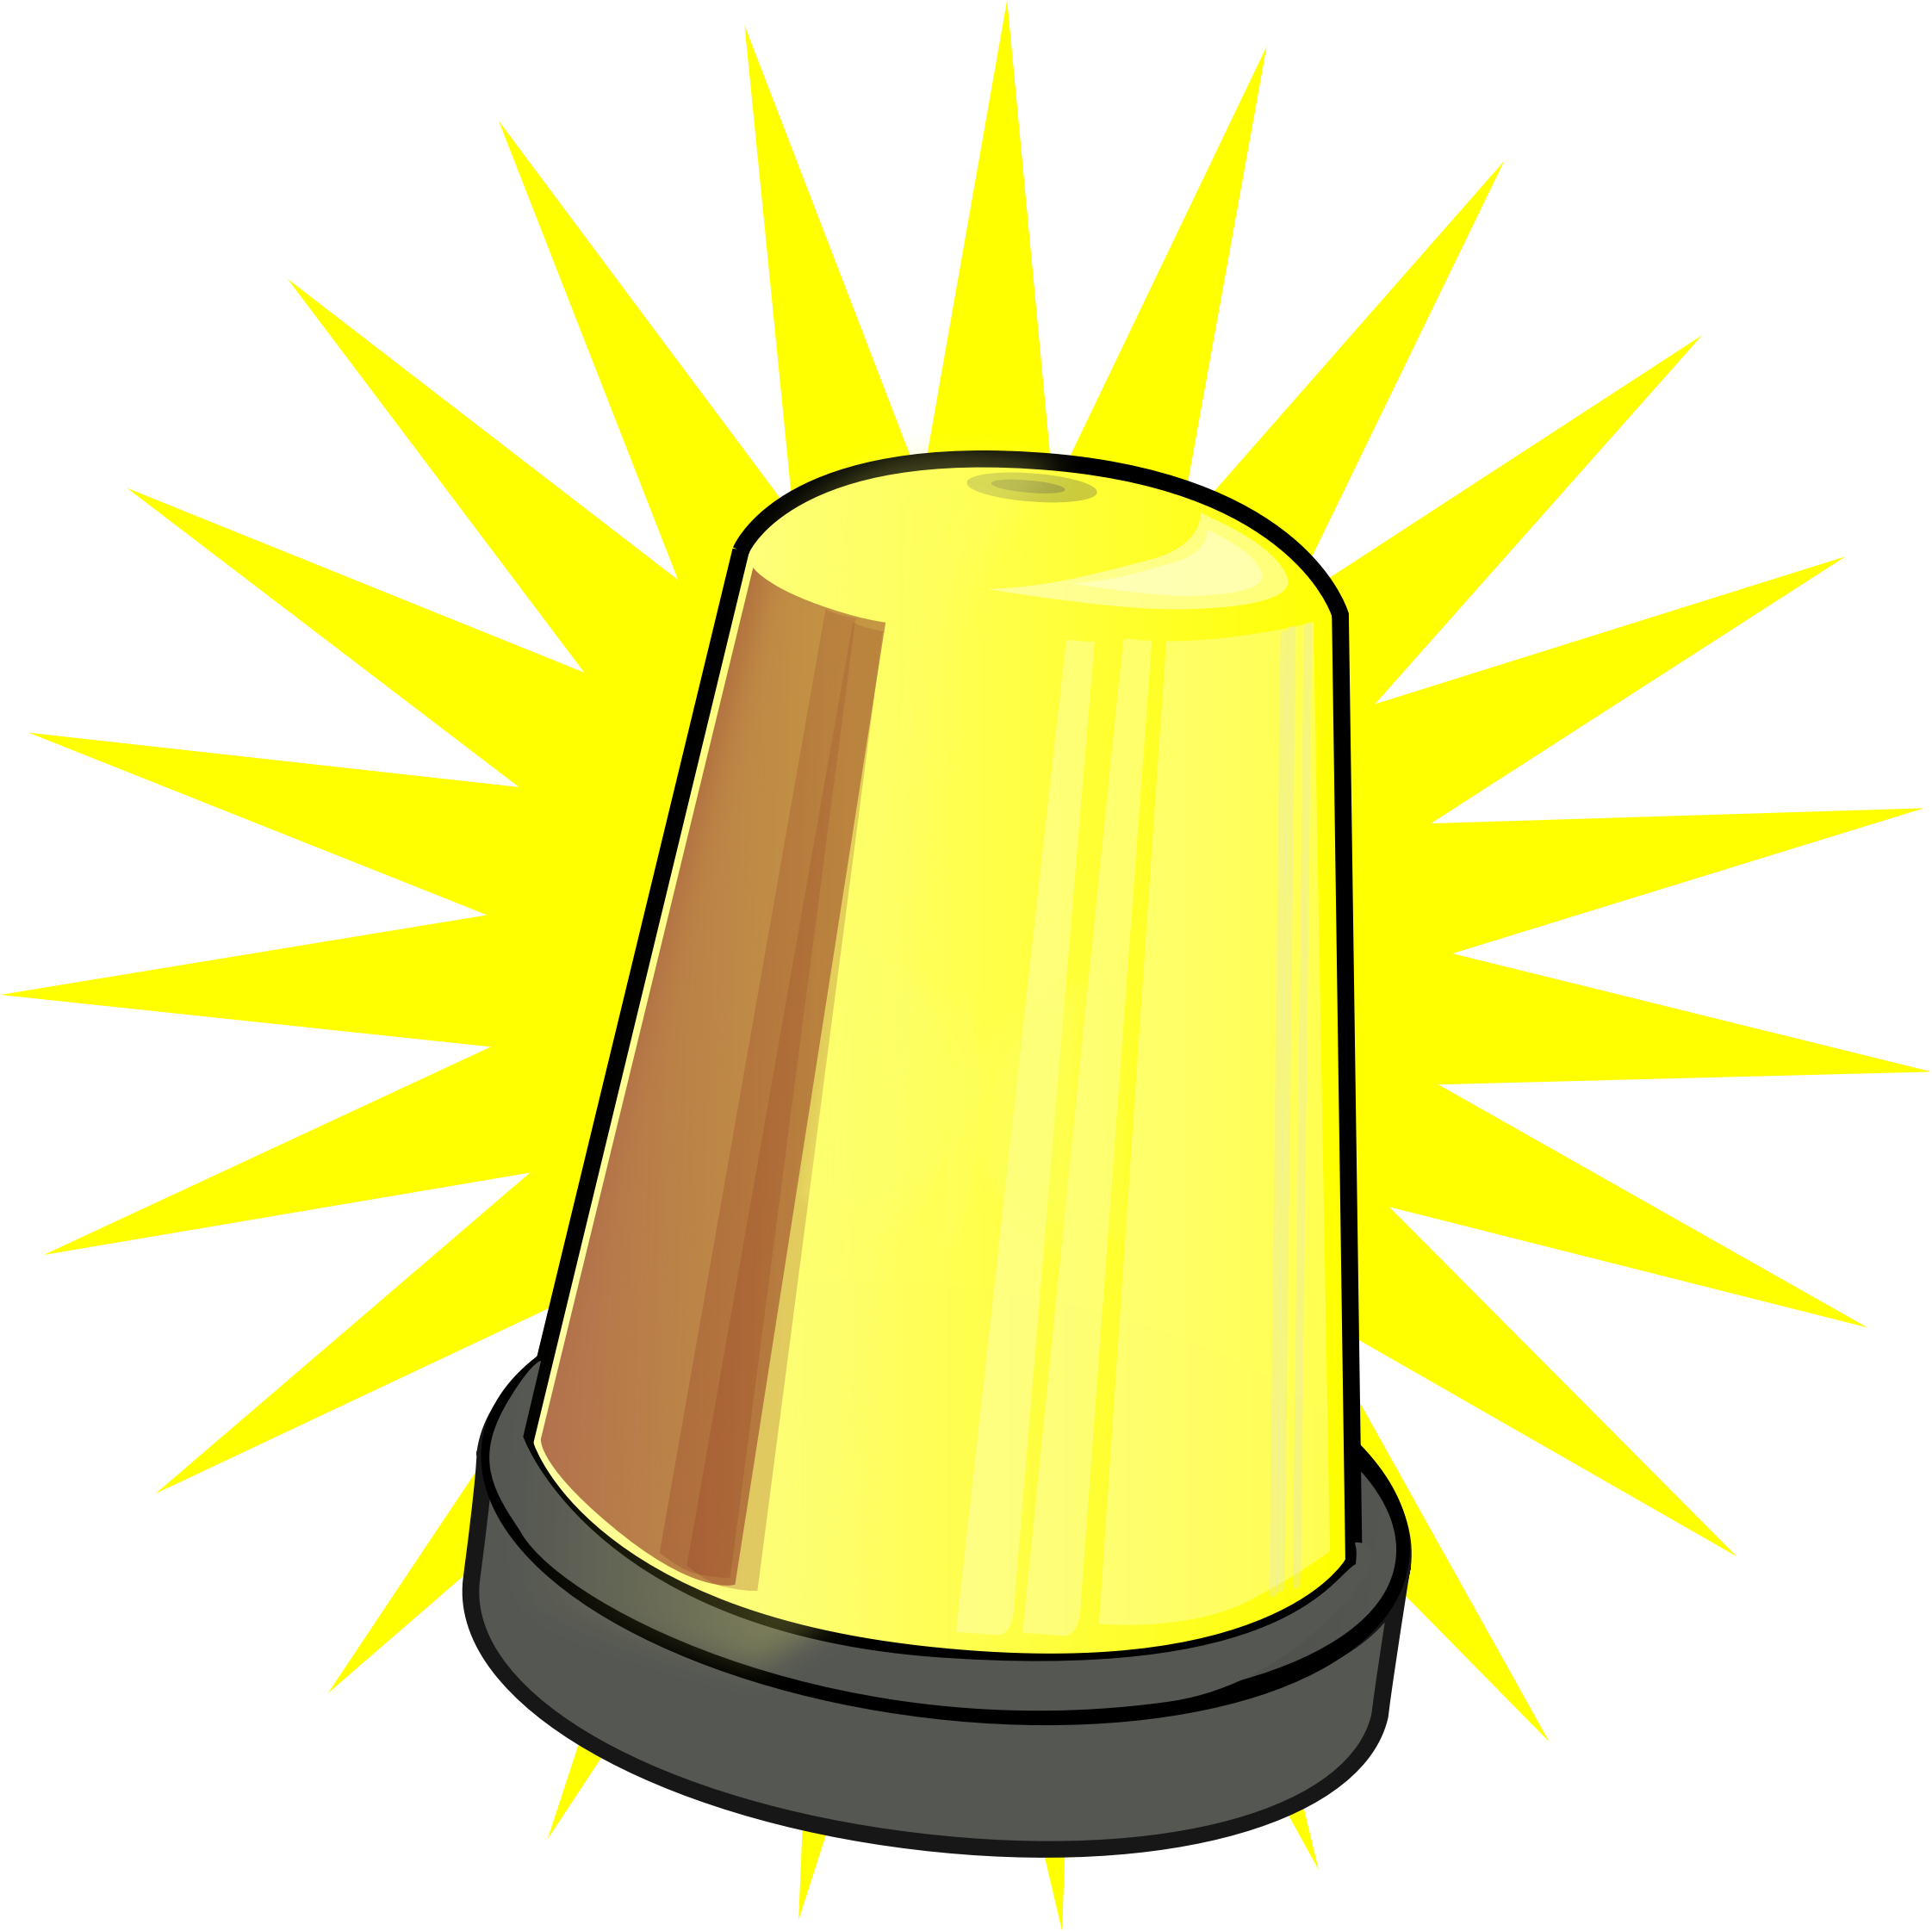 clip art library stock Caution clipart warning light.  beauty yellow signal